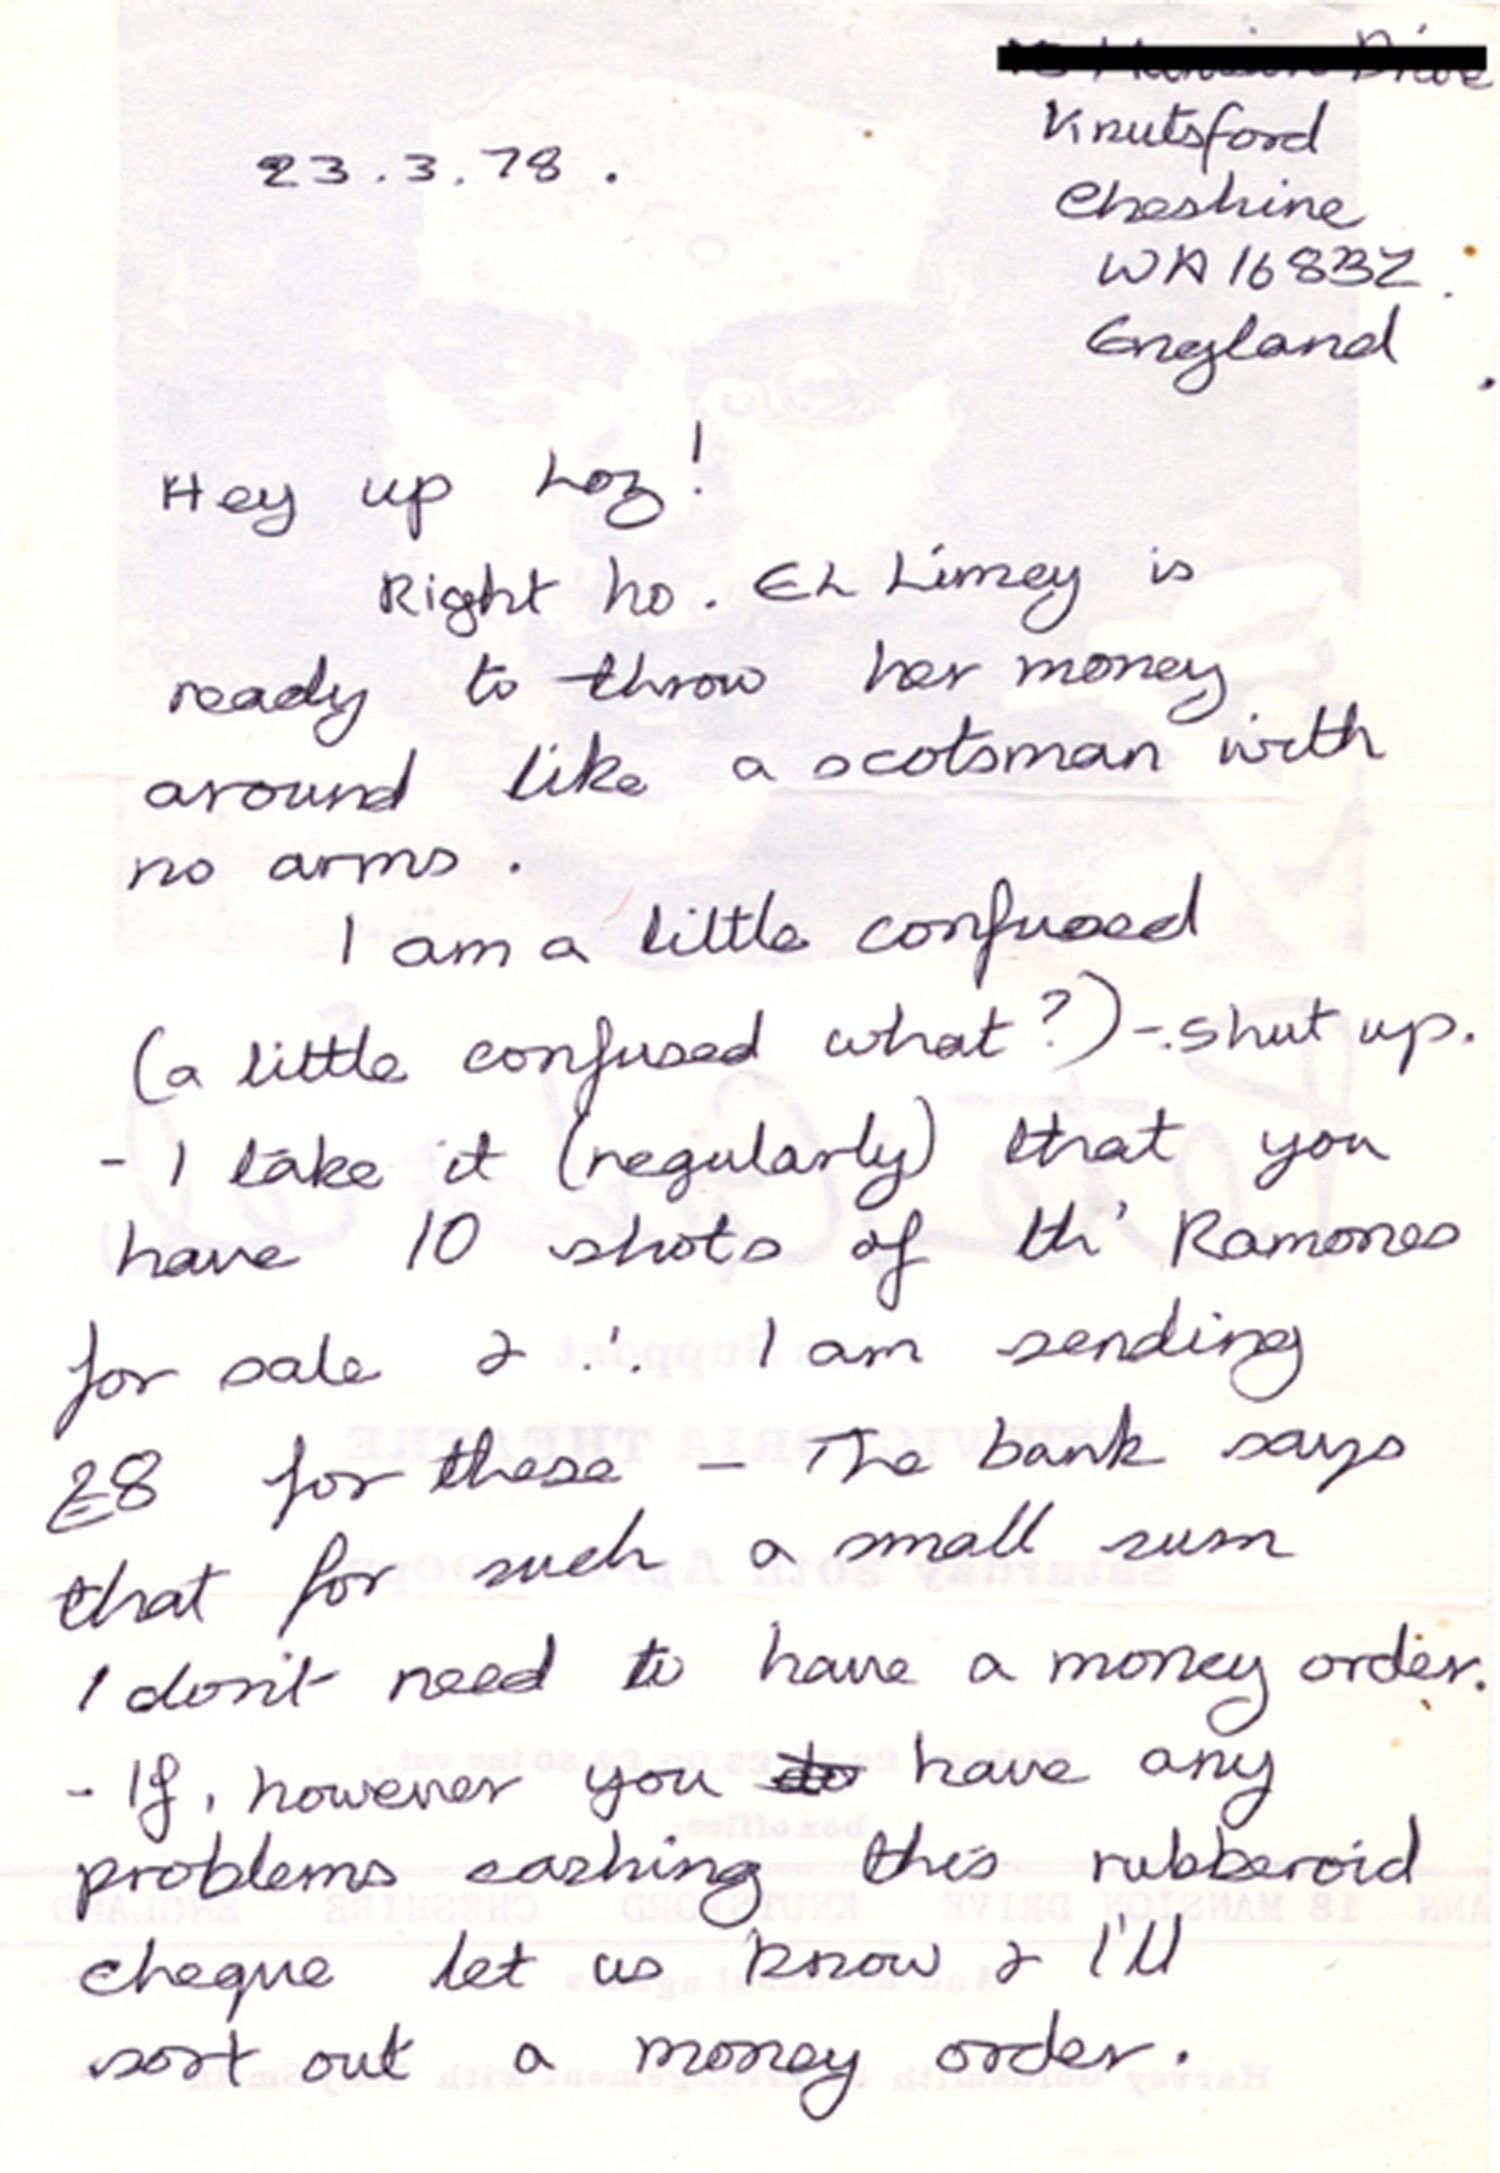 Letter from 'El Limey'